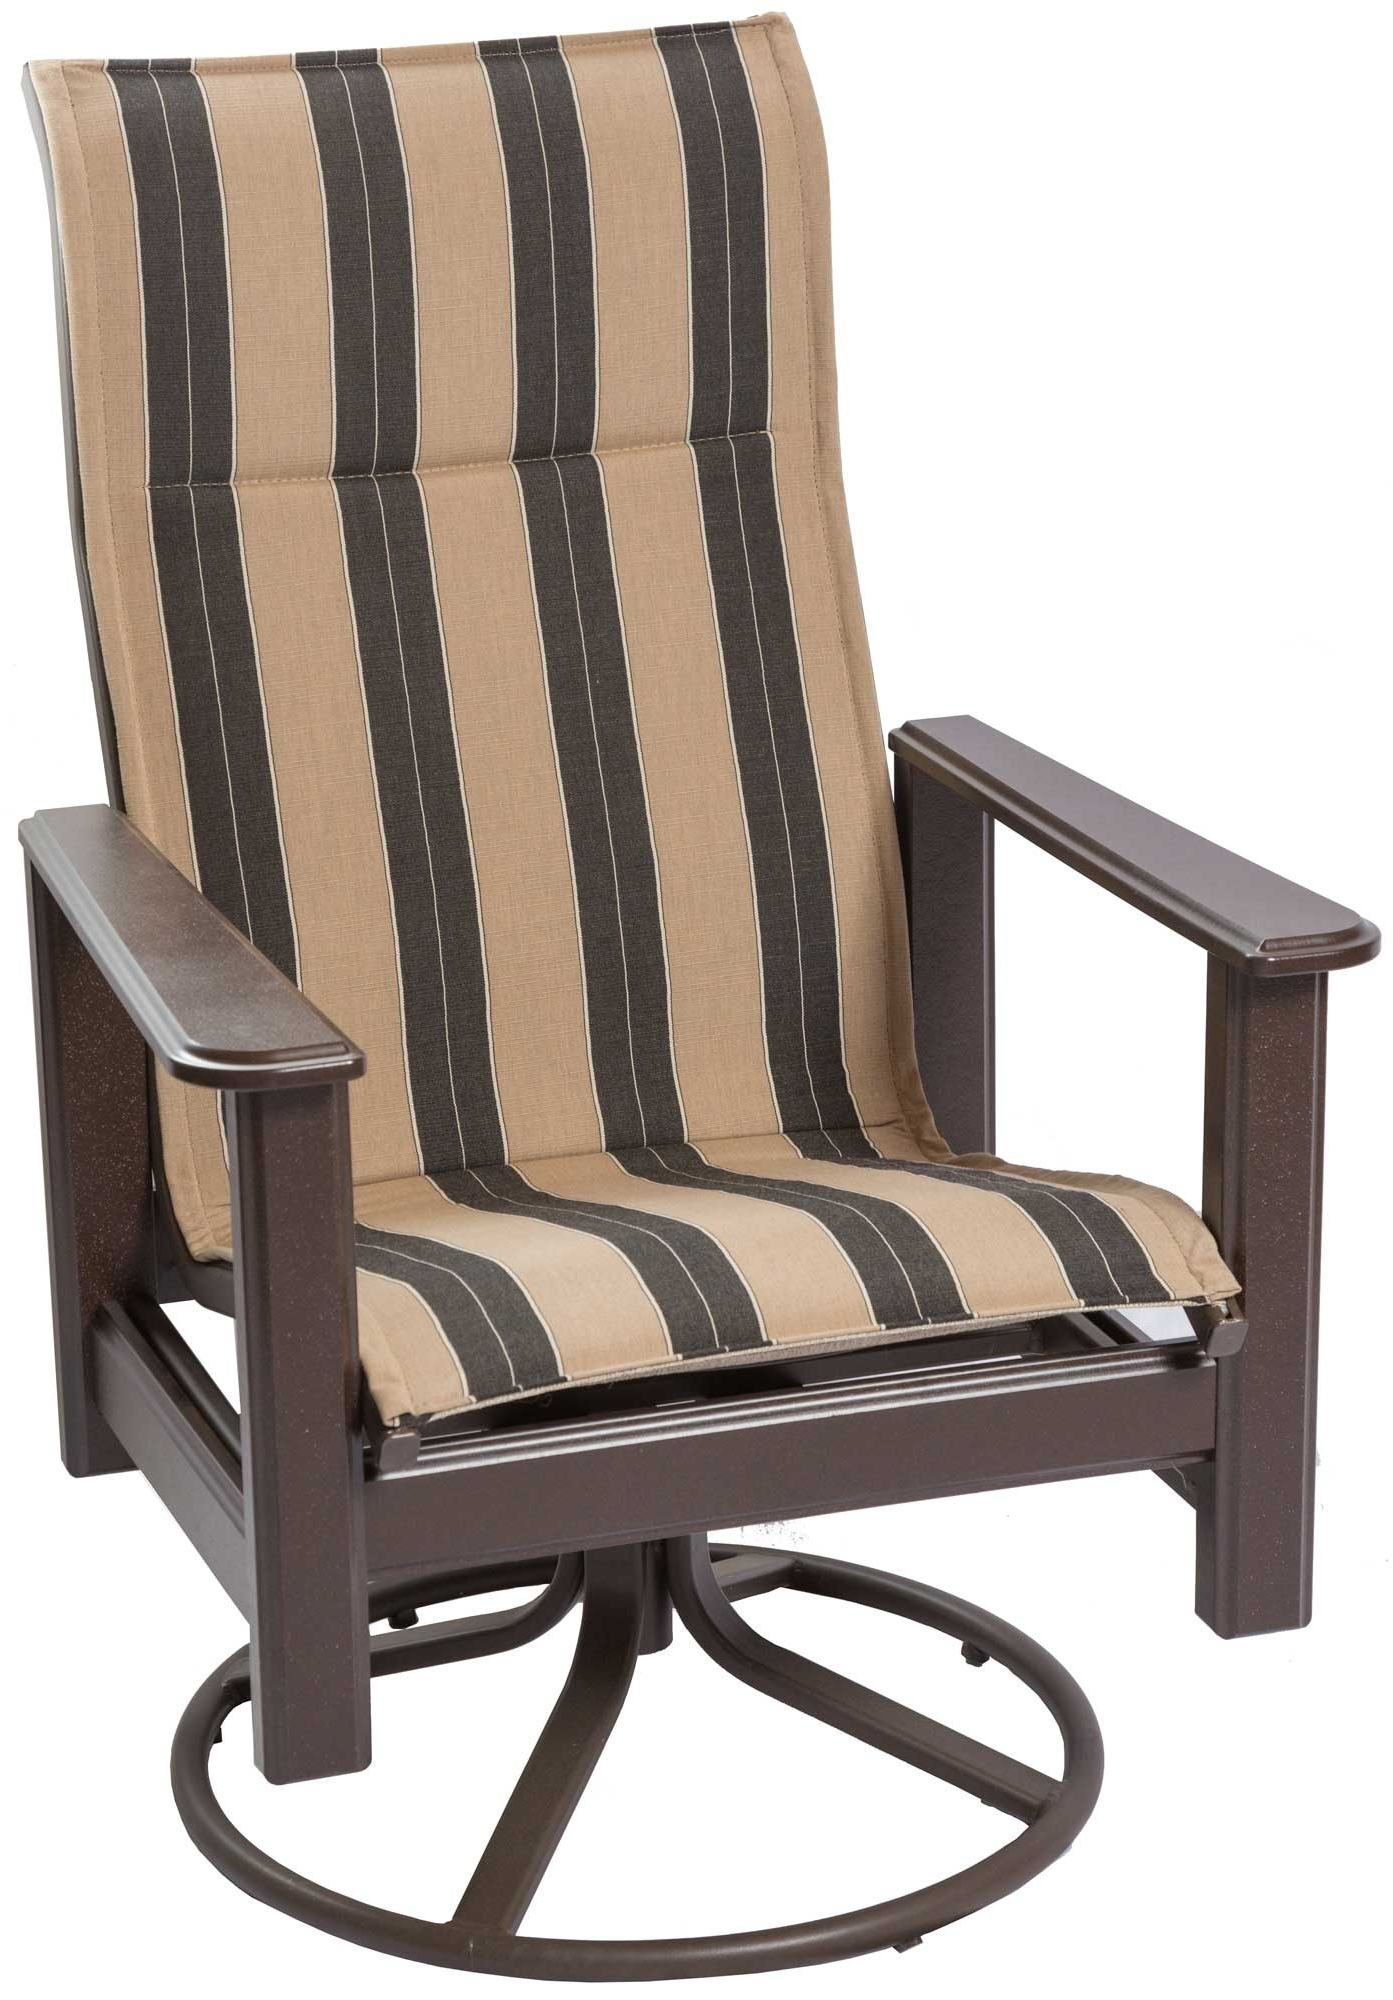 Outdoor Swivel Rocking Chair Throughout High Back Rocking Chairs (View 13 of 15)